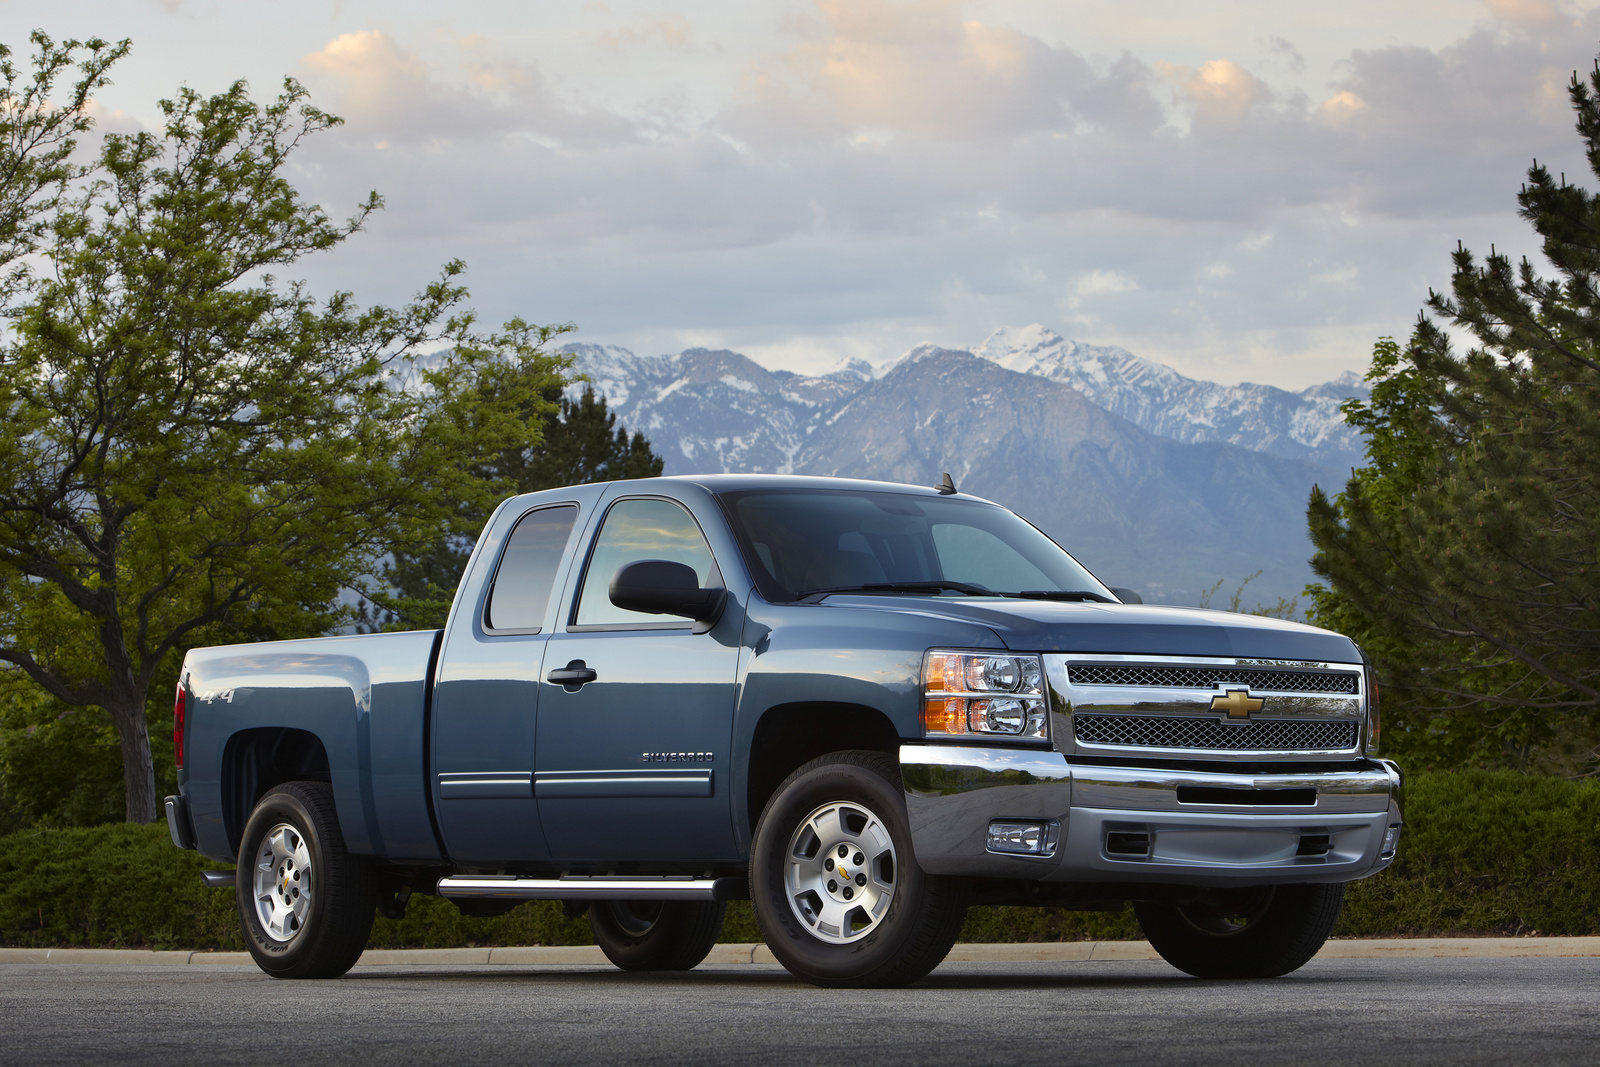 2013 Chevrolet Silverado 1500 - Test Drive Review - CarGurus